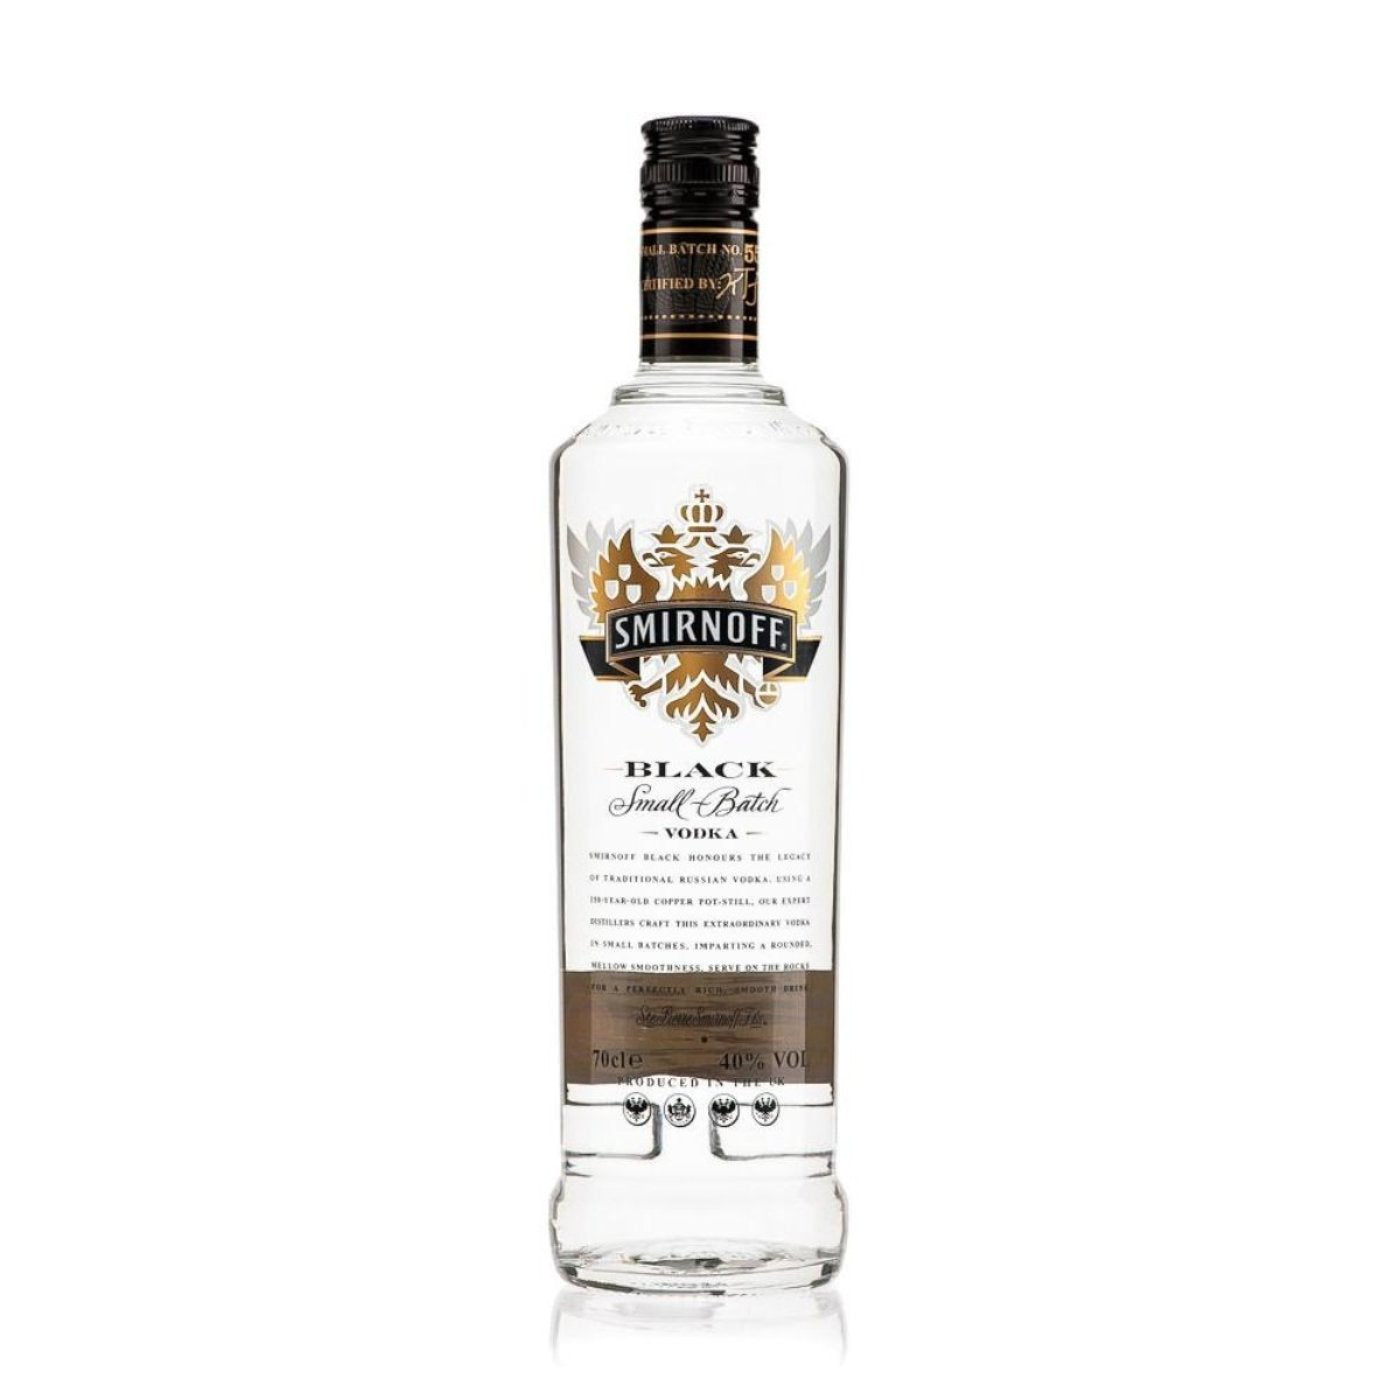 Smirnoff Vodka Black 750ml